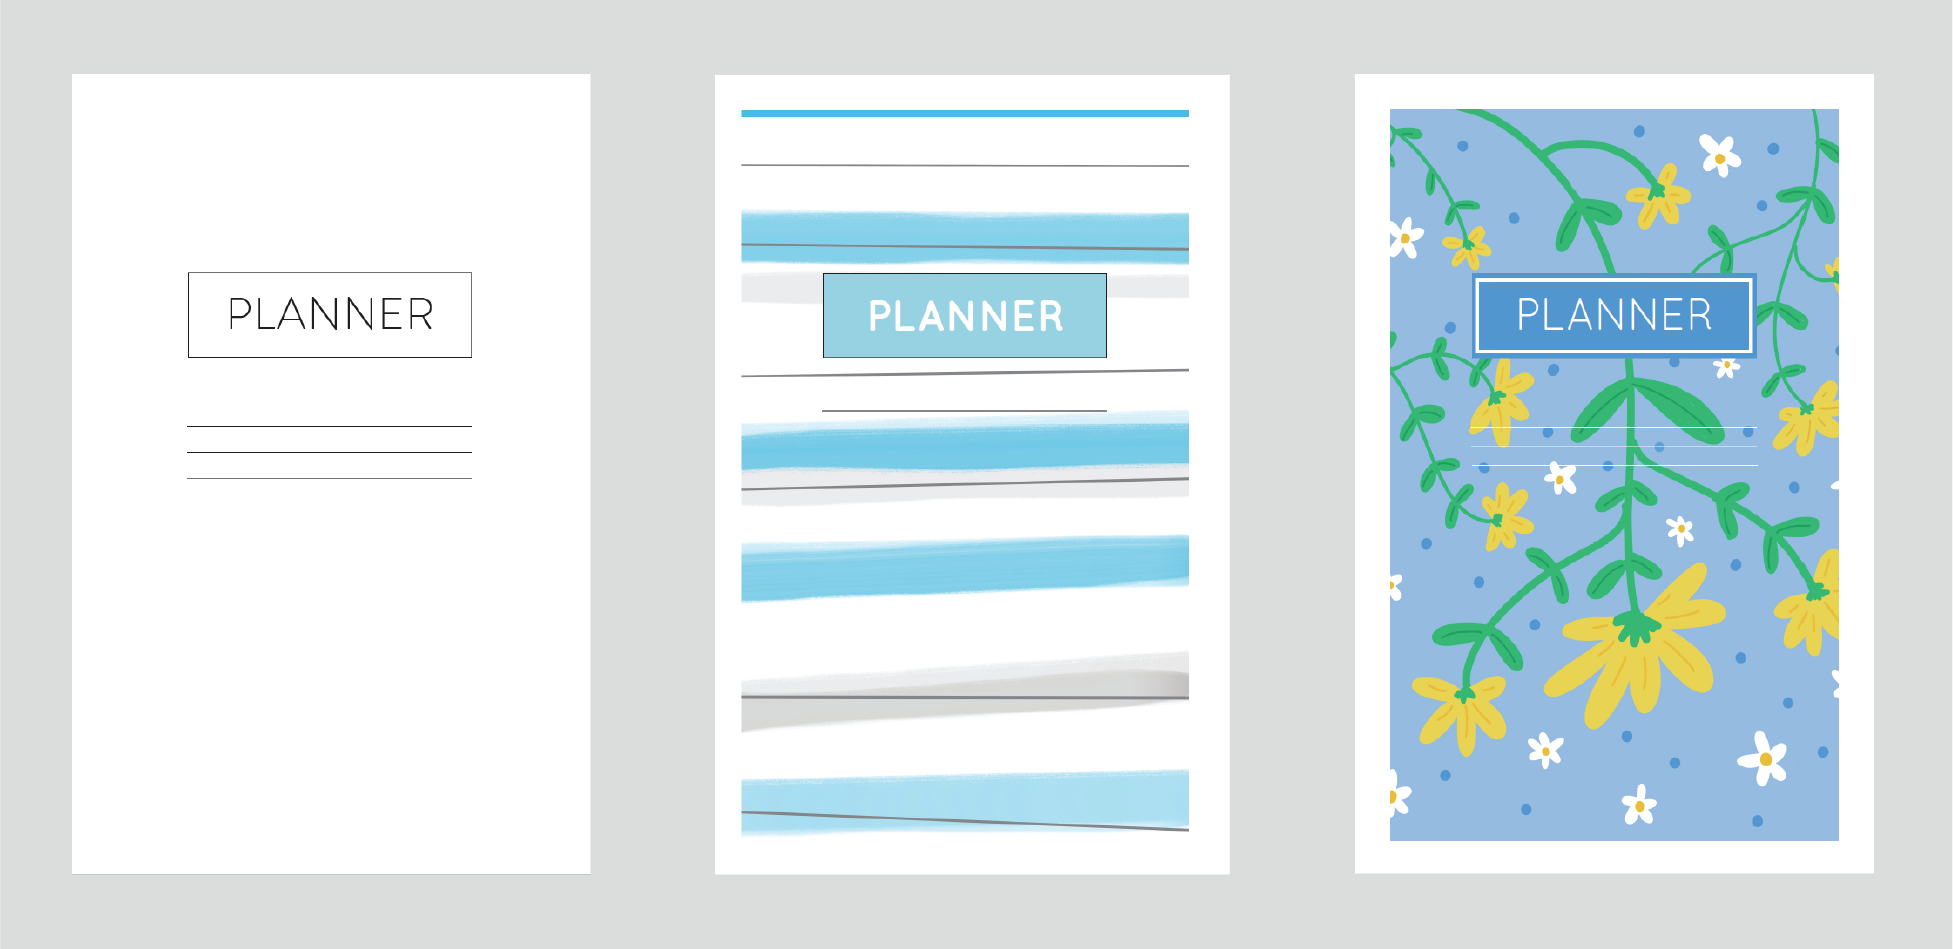 image relating to Diy Planner Pages named How in direction of Make Your Personalized Planner with a Mini Binder - Blue